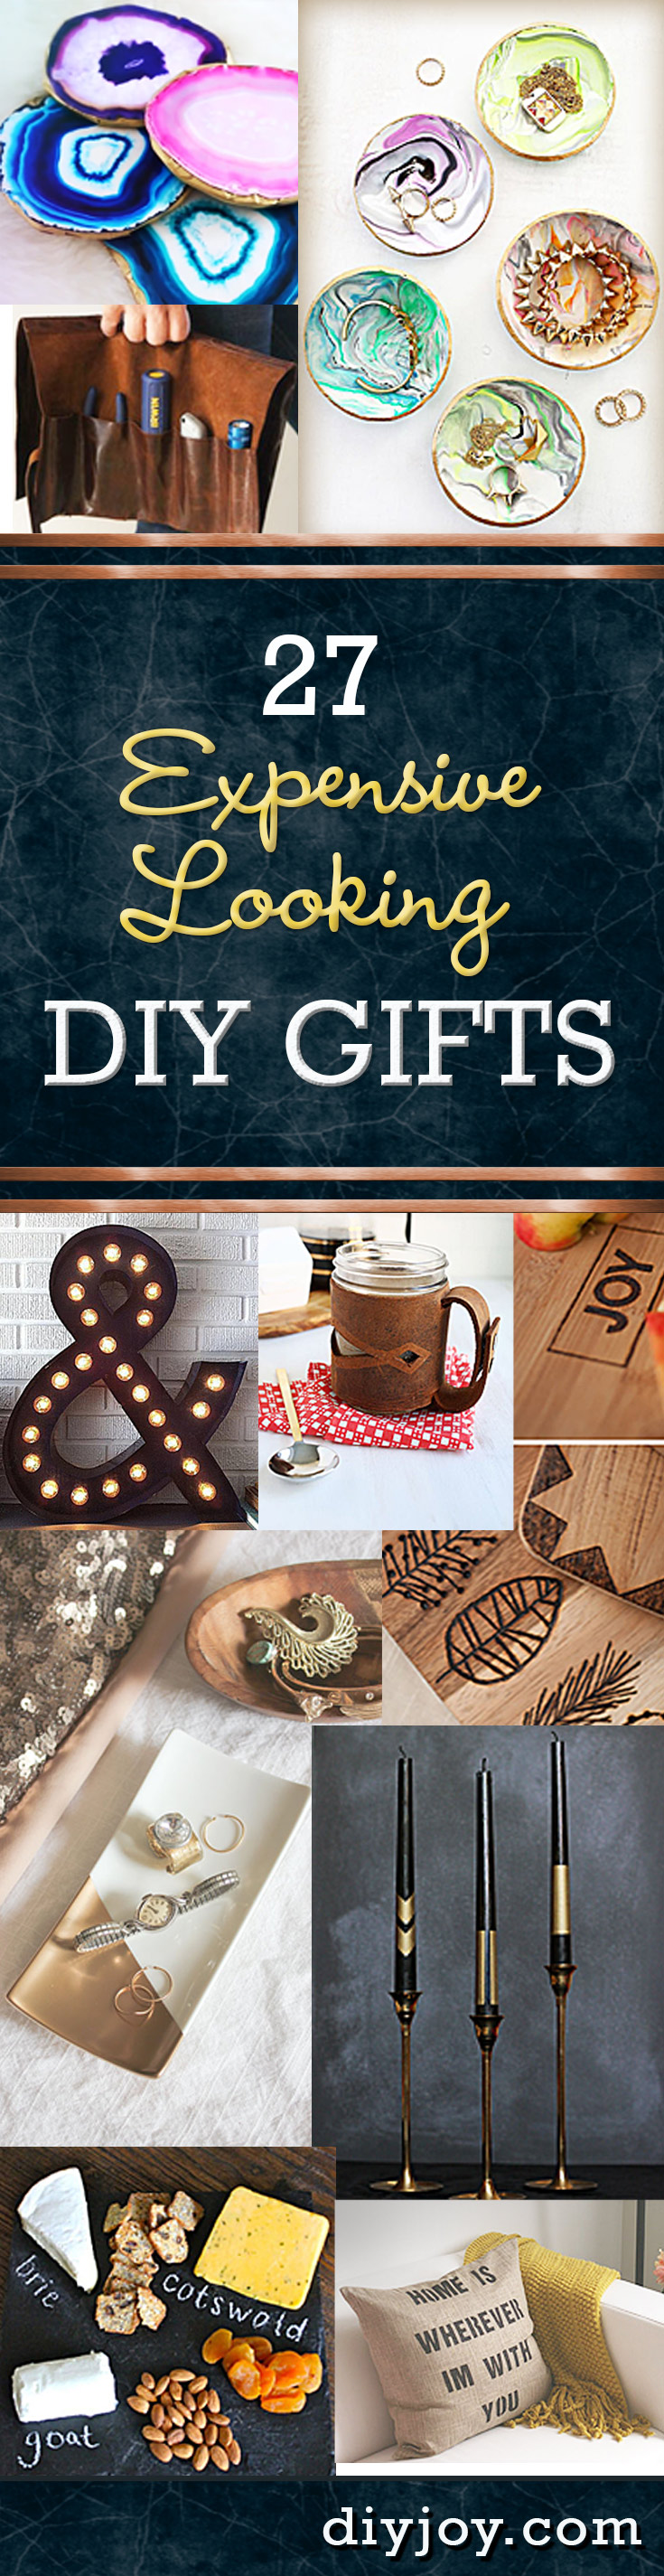 inexpensive diy gifts and creative crafts and projects that make cool diy gift ideas cheap